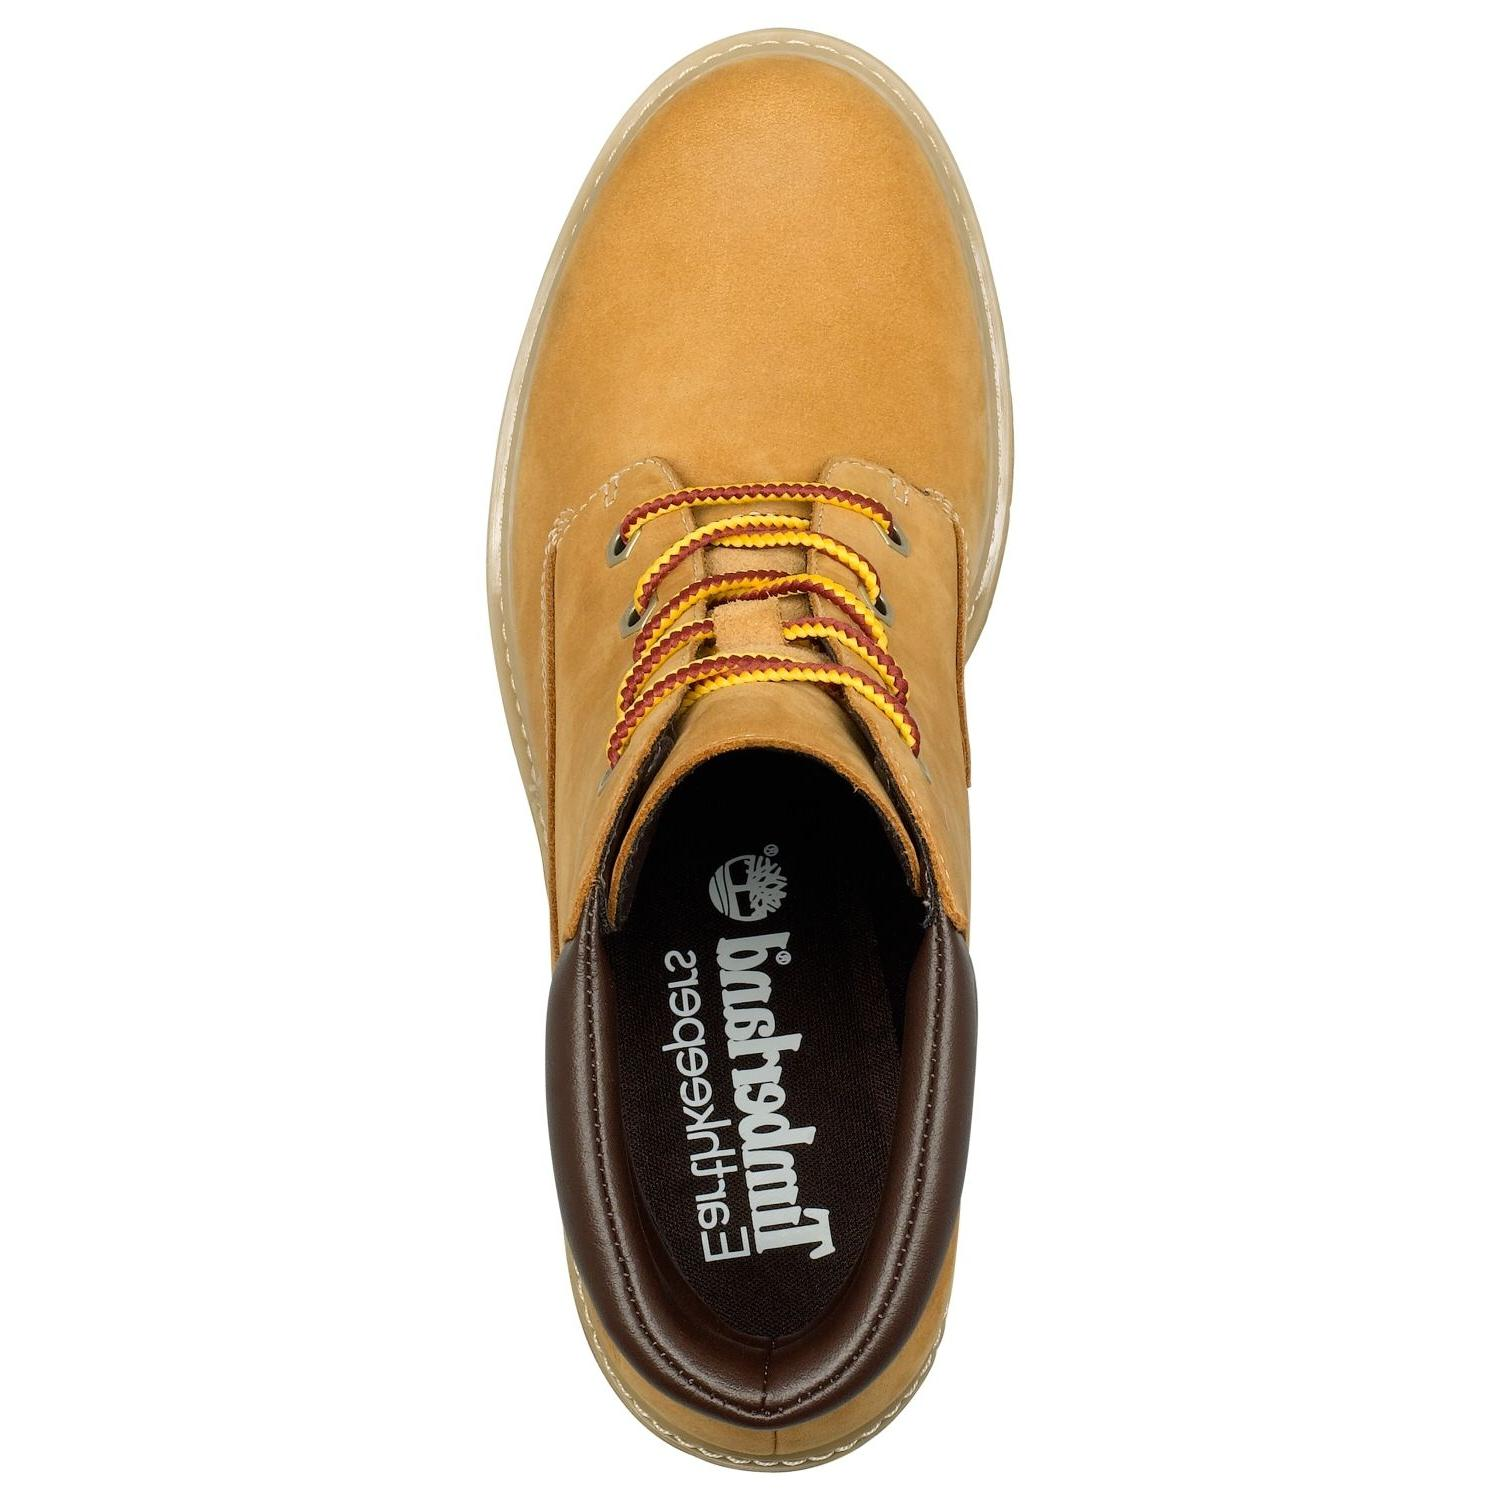 Timberland inch Wedge 8251A Wheat Sizes